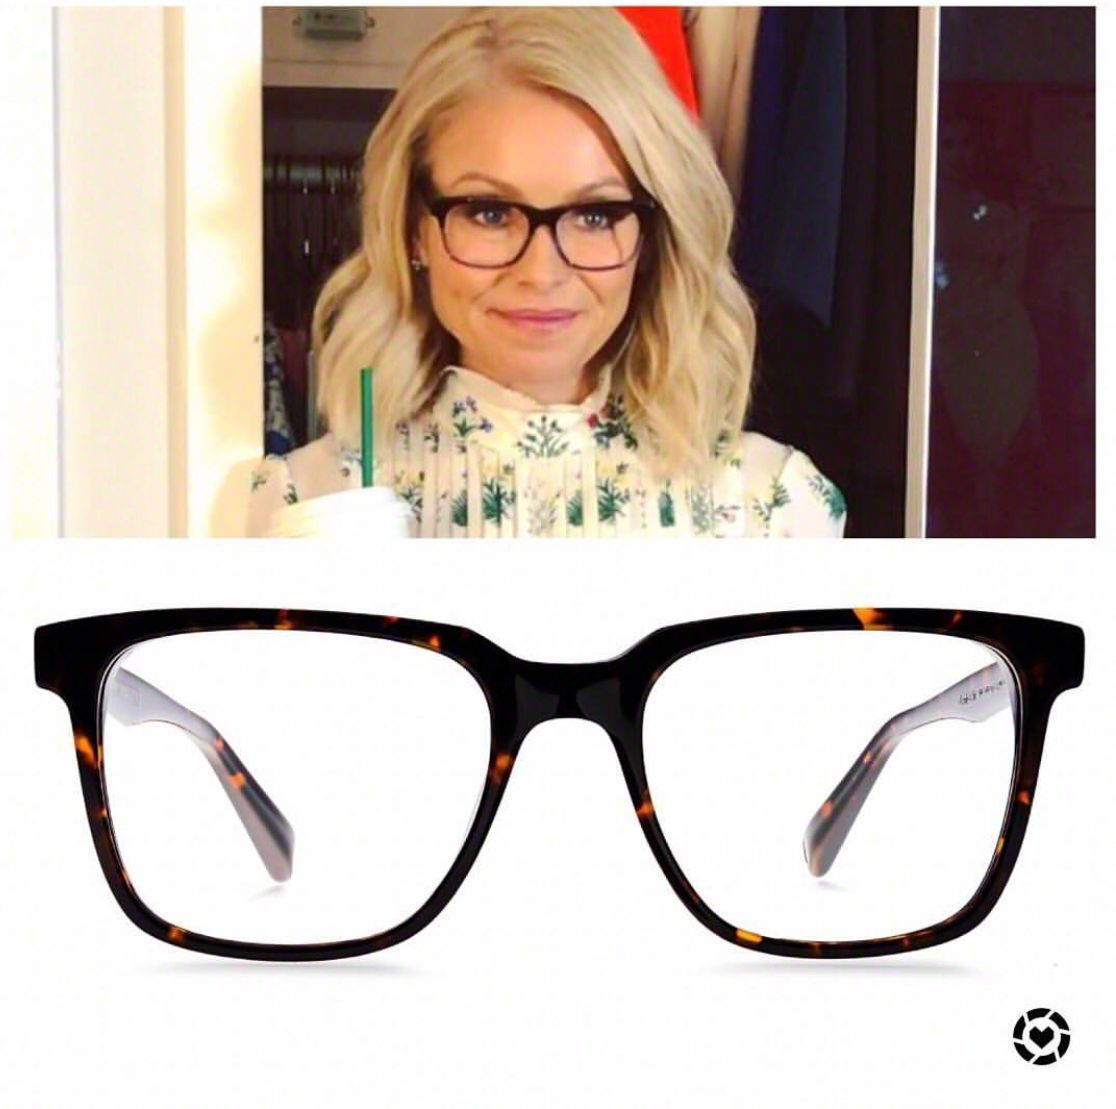 90e32a8882 Kelly Ripa s Reading Glasses https   www.bigblondehair.com kelly-